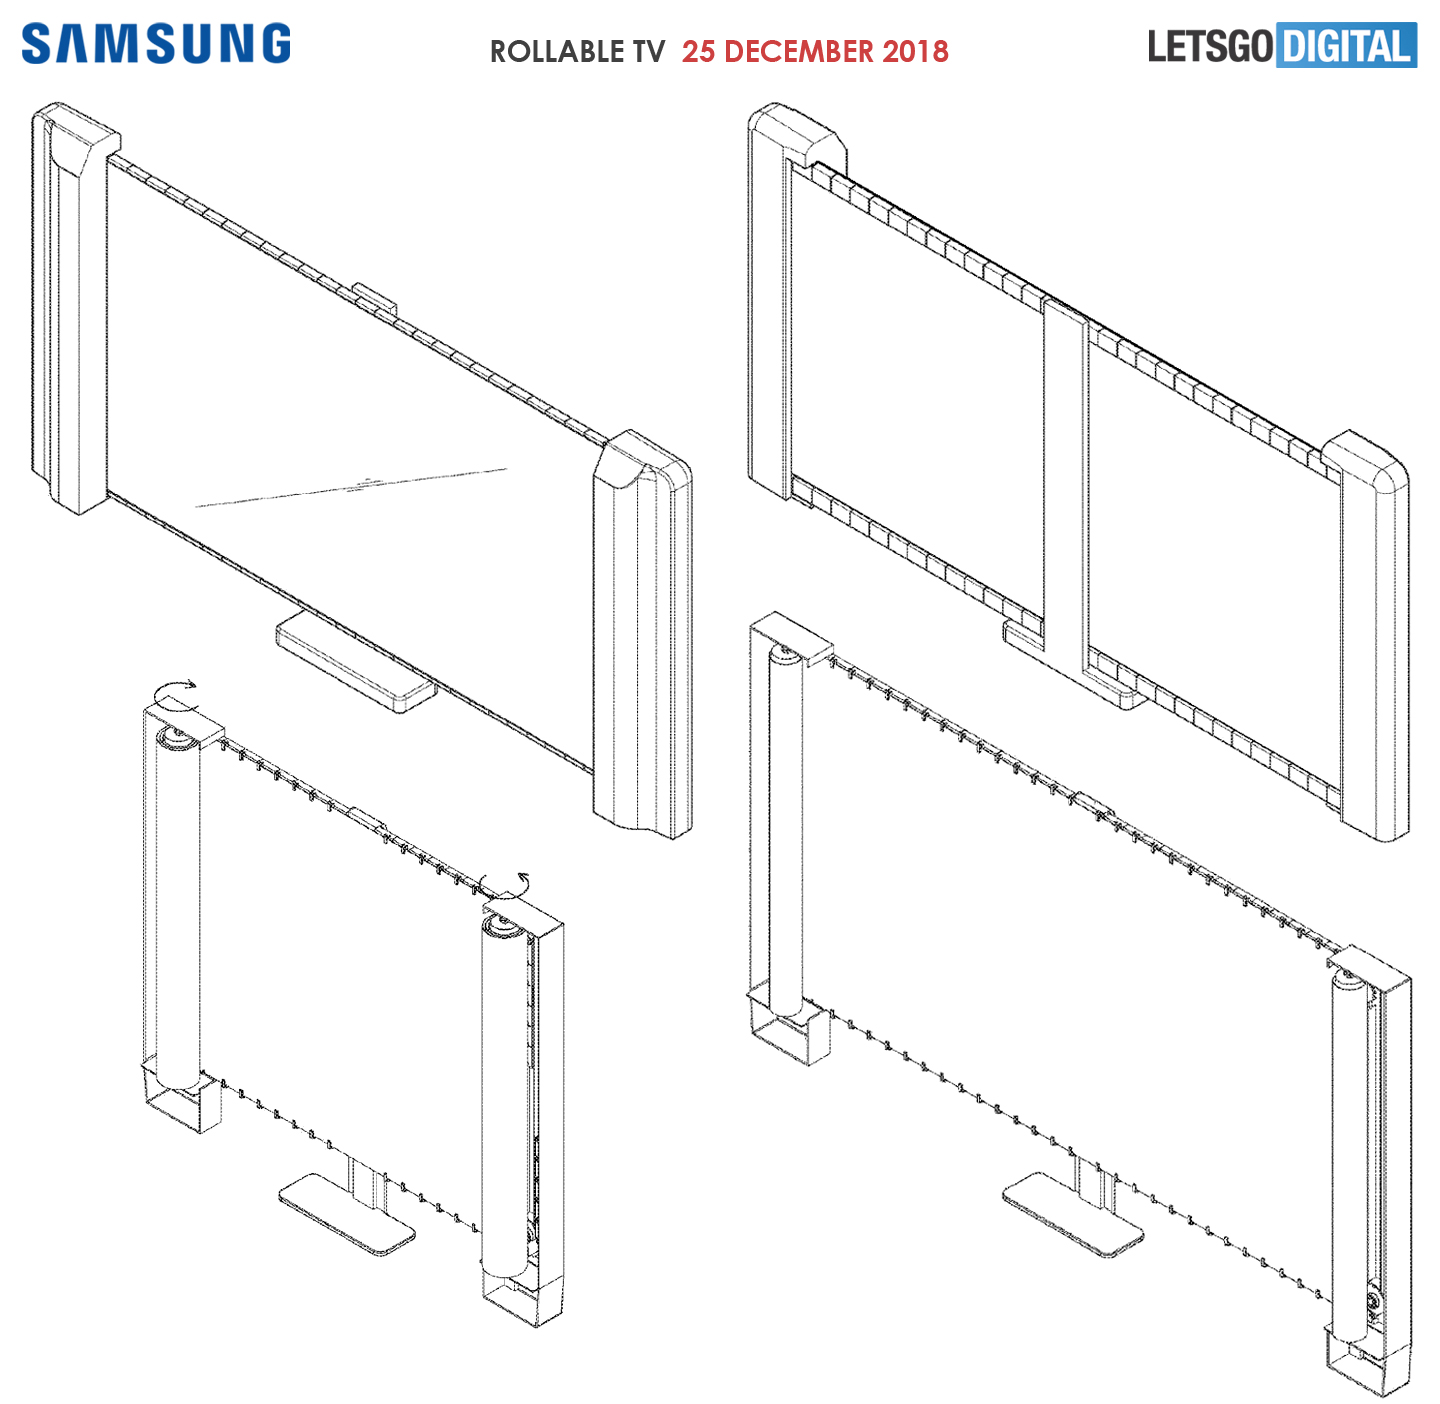 Samsung goes in a different direction with their own roll